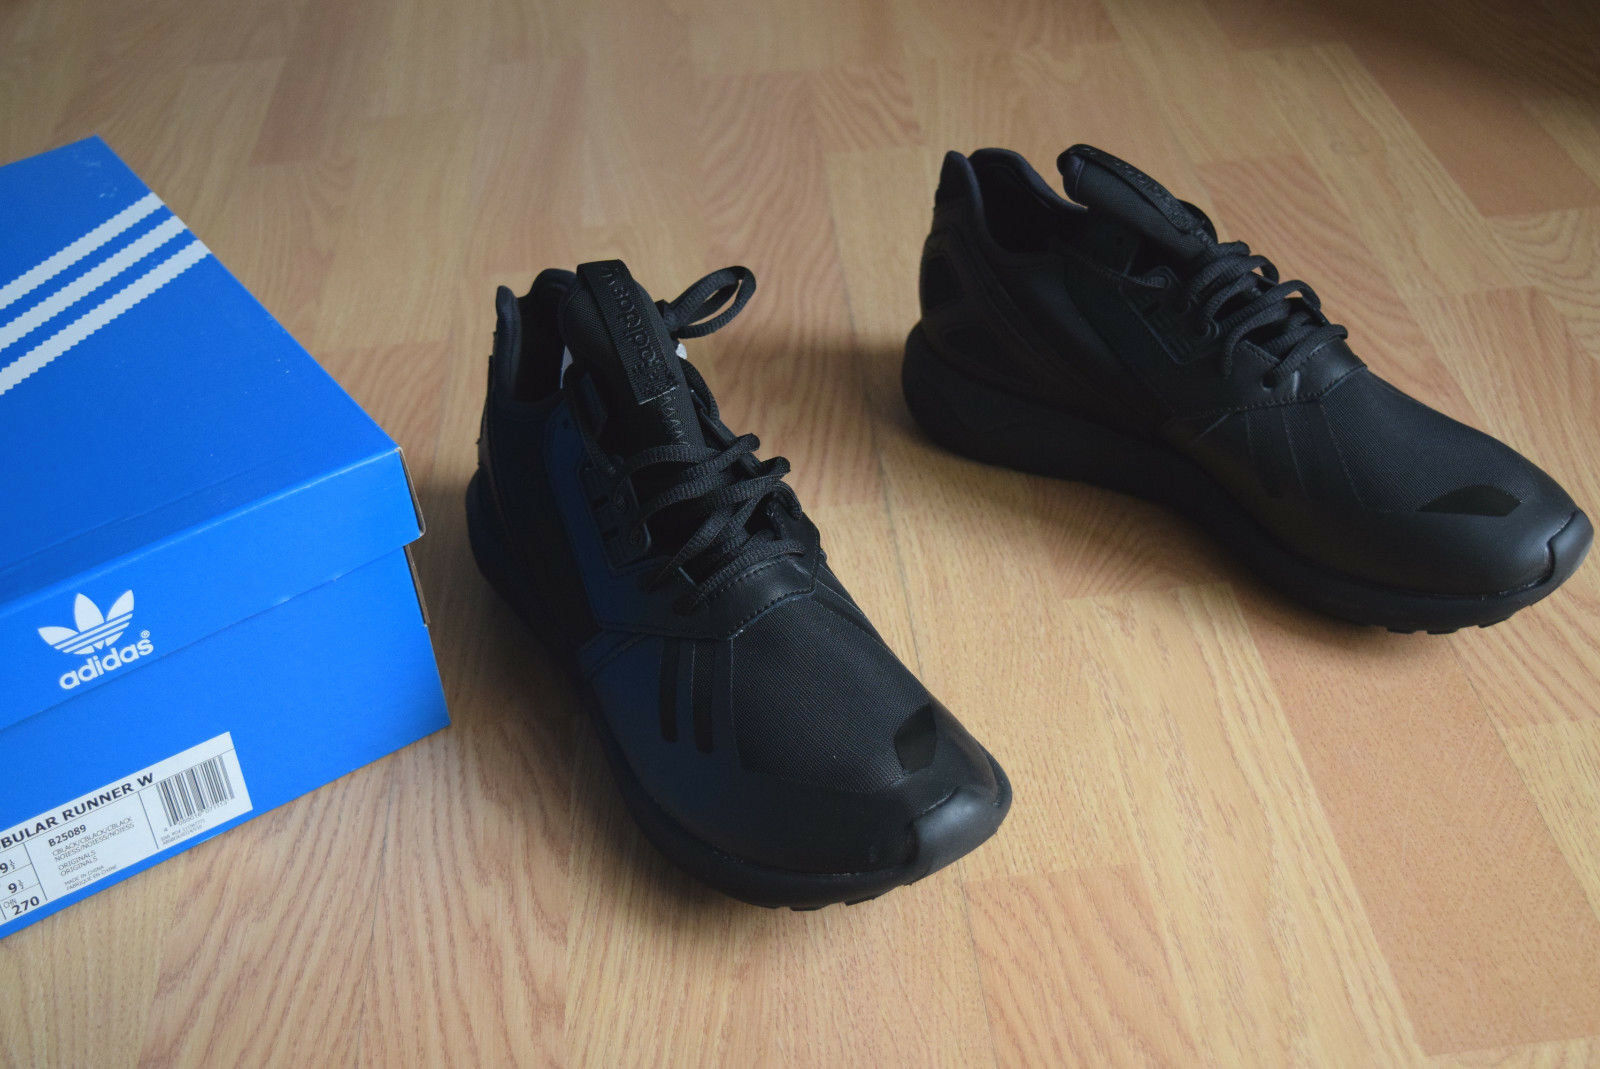 Adidas Tubular Runner 38 38 38 39 40 41 42 43 44 45 B25089 shadow yeEzY radial viral  | Online Outlet Shop  065be5